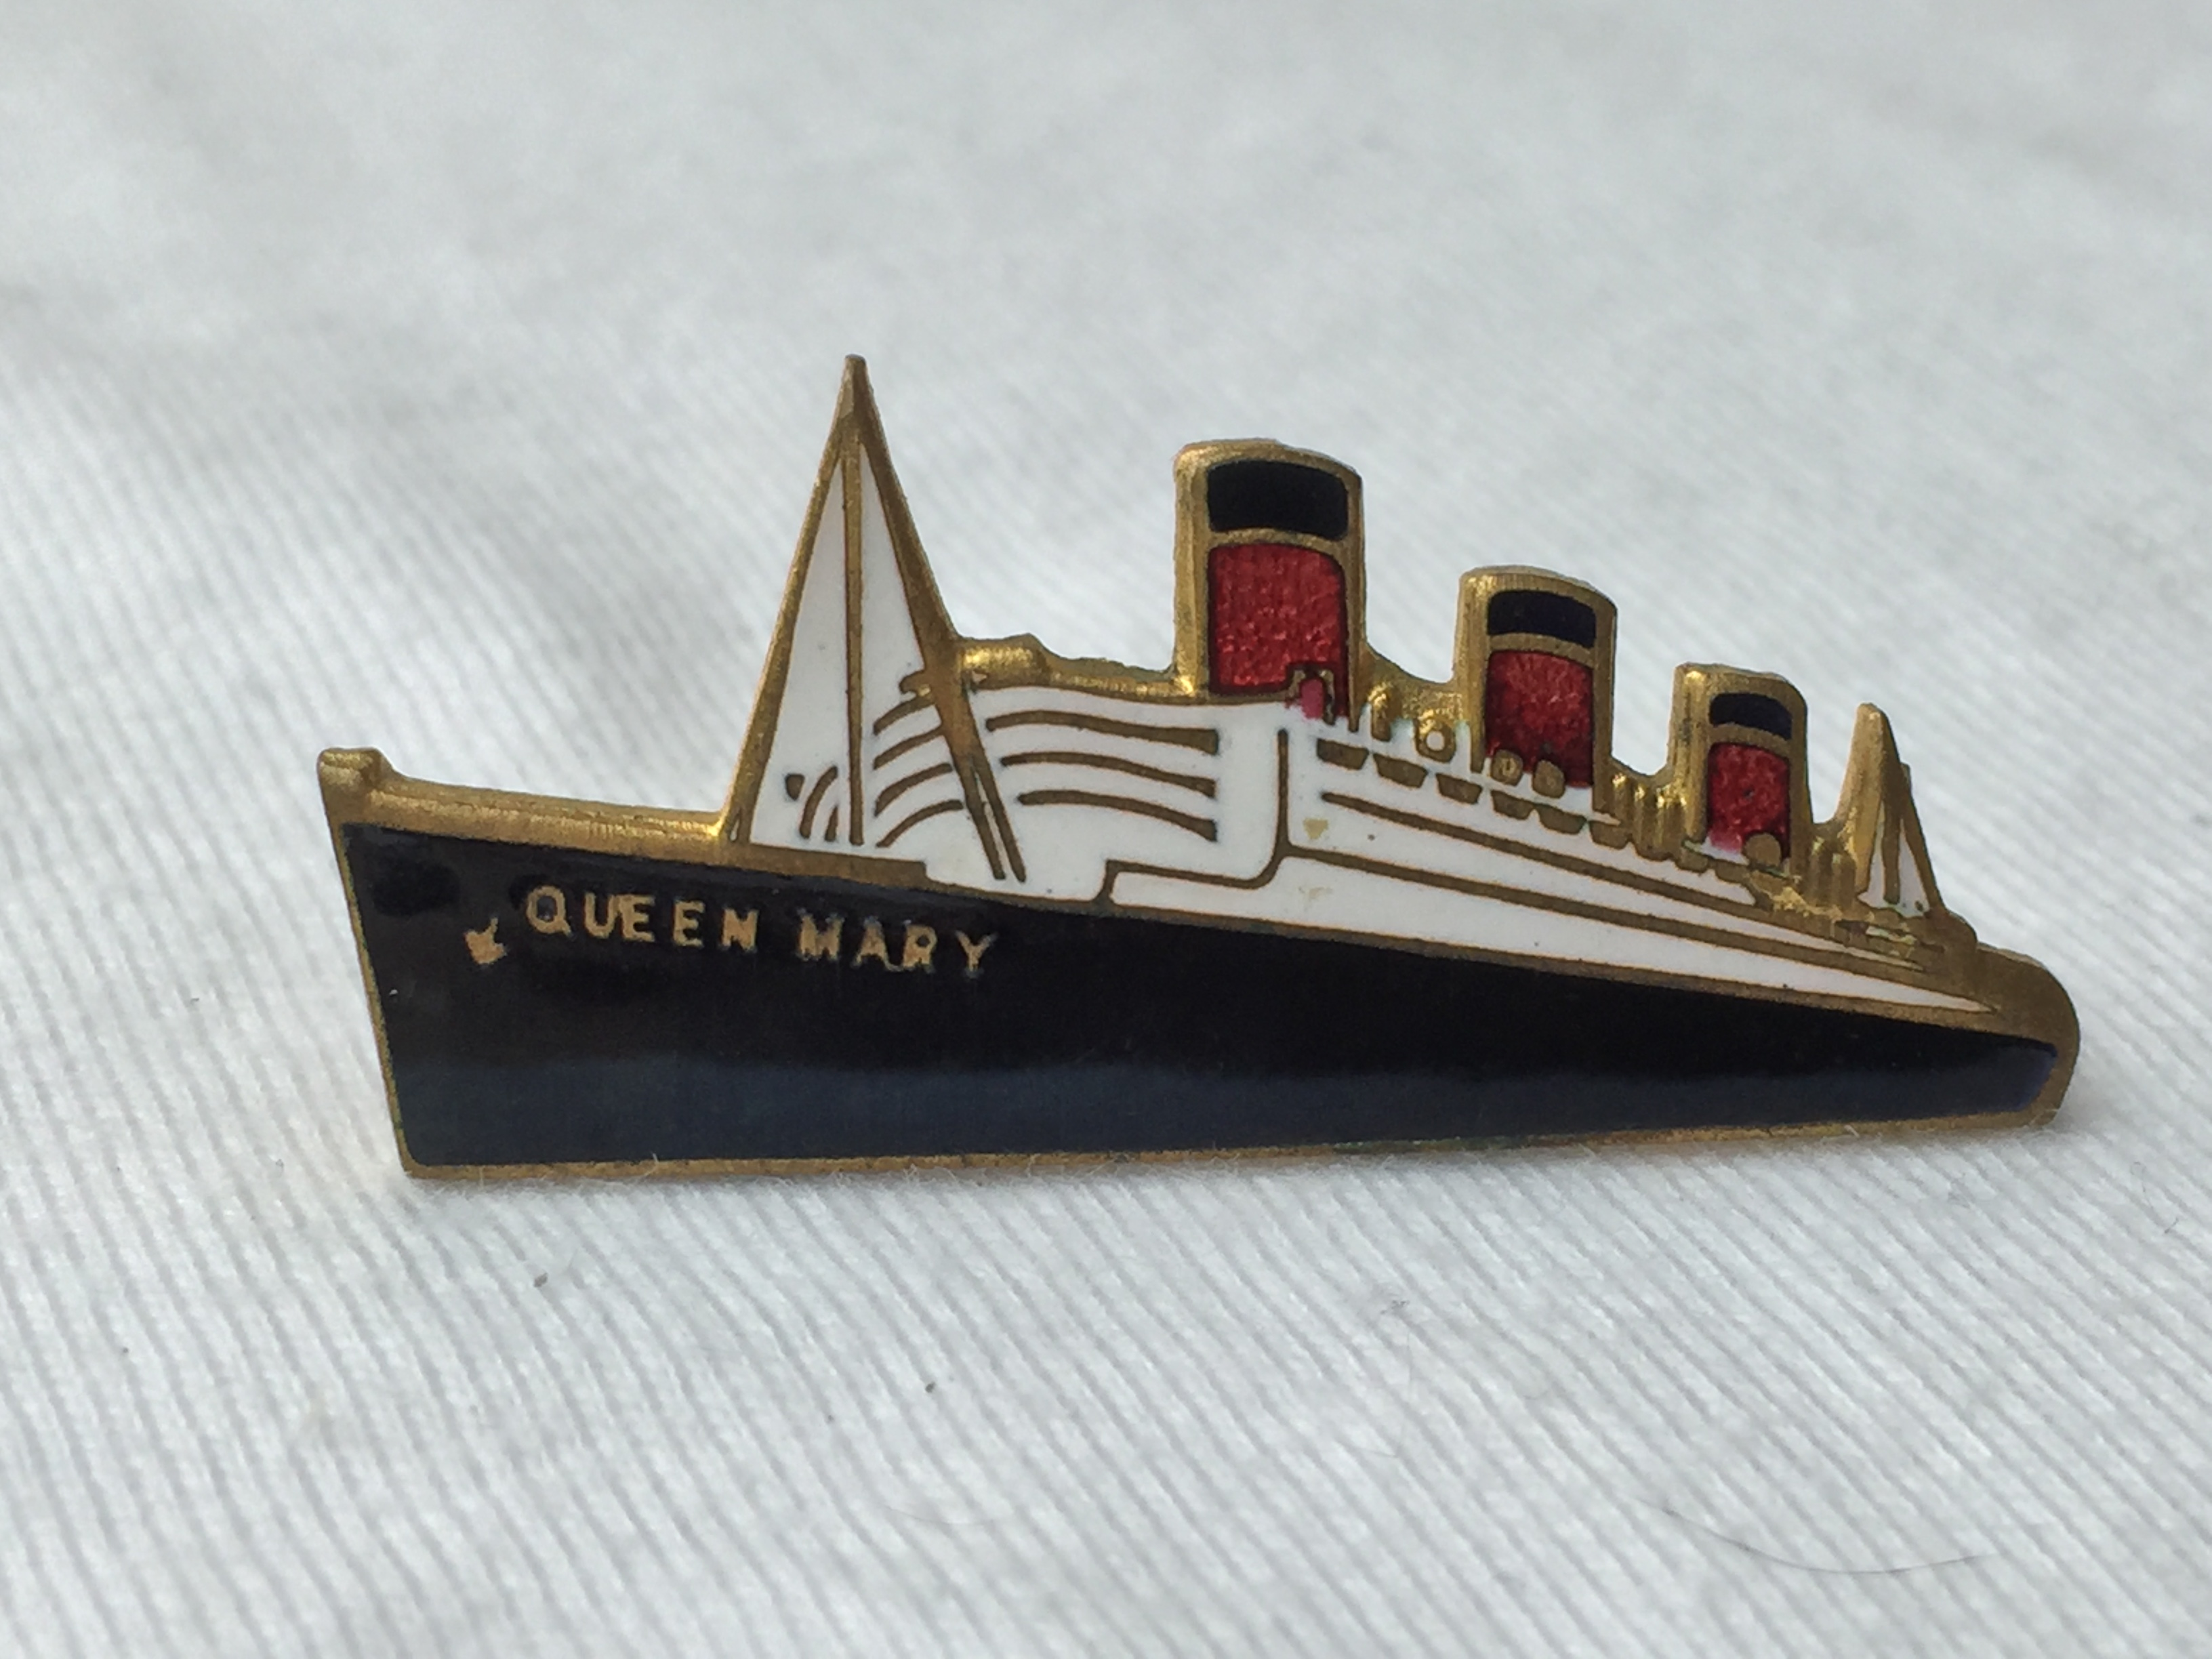 EARLY SHIP SHAPE LAPEL PIN FROM THE CUNARD LINE VESSEL THE RMS QUEEN MARY